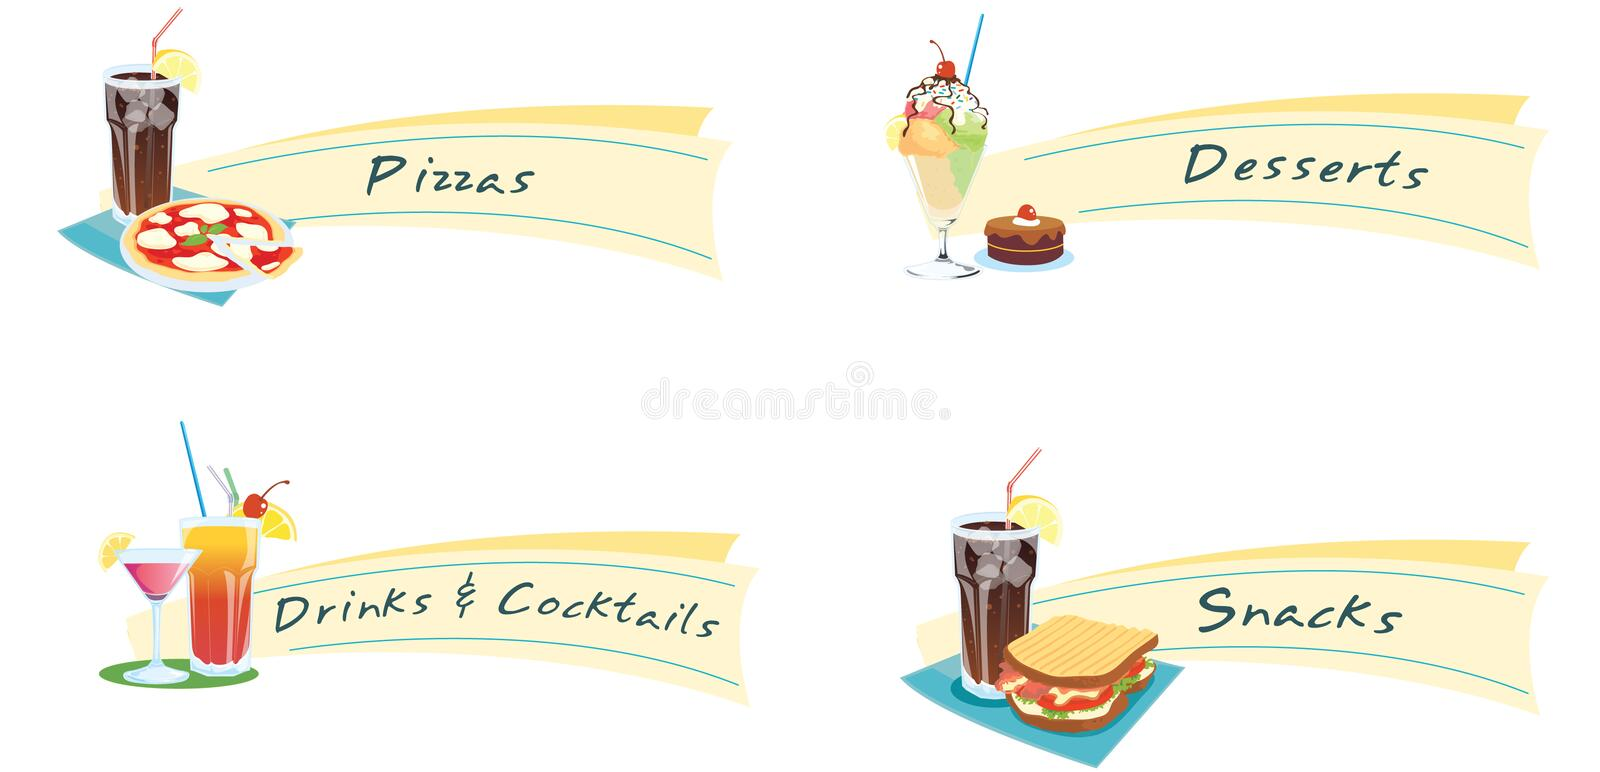 Sandwiches and drinks. Illustrations of food and drinks for a menu royalty free illustration